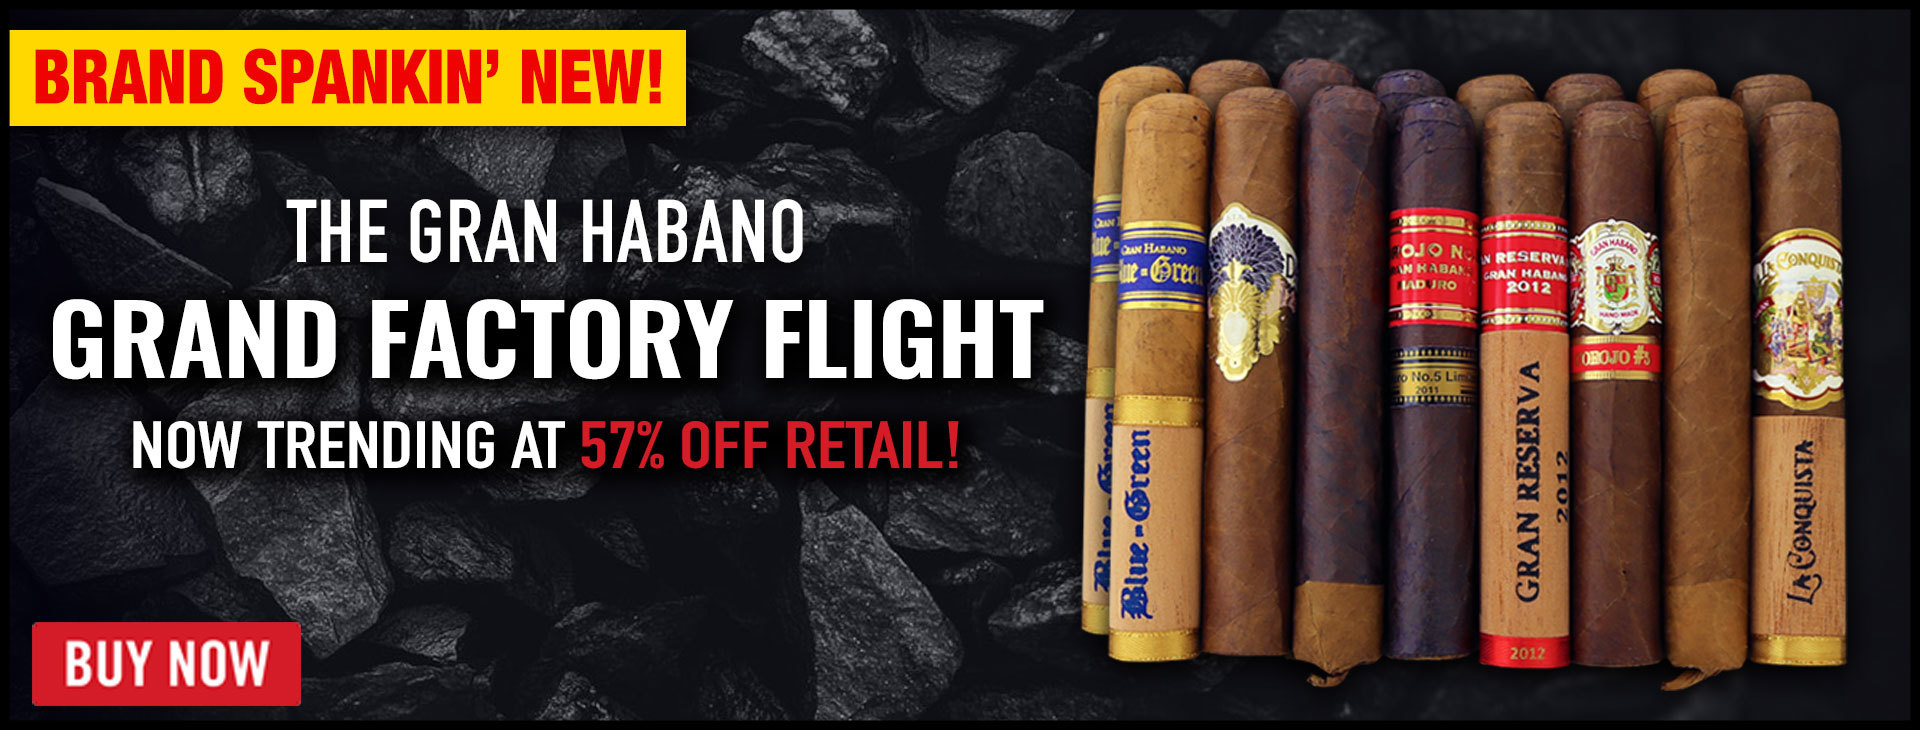 57% OFF Gran Habano Bestseller Flights!